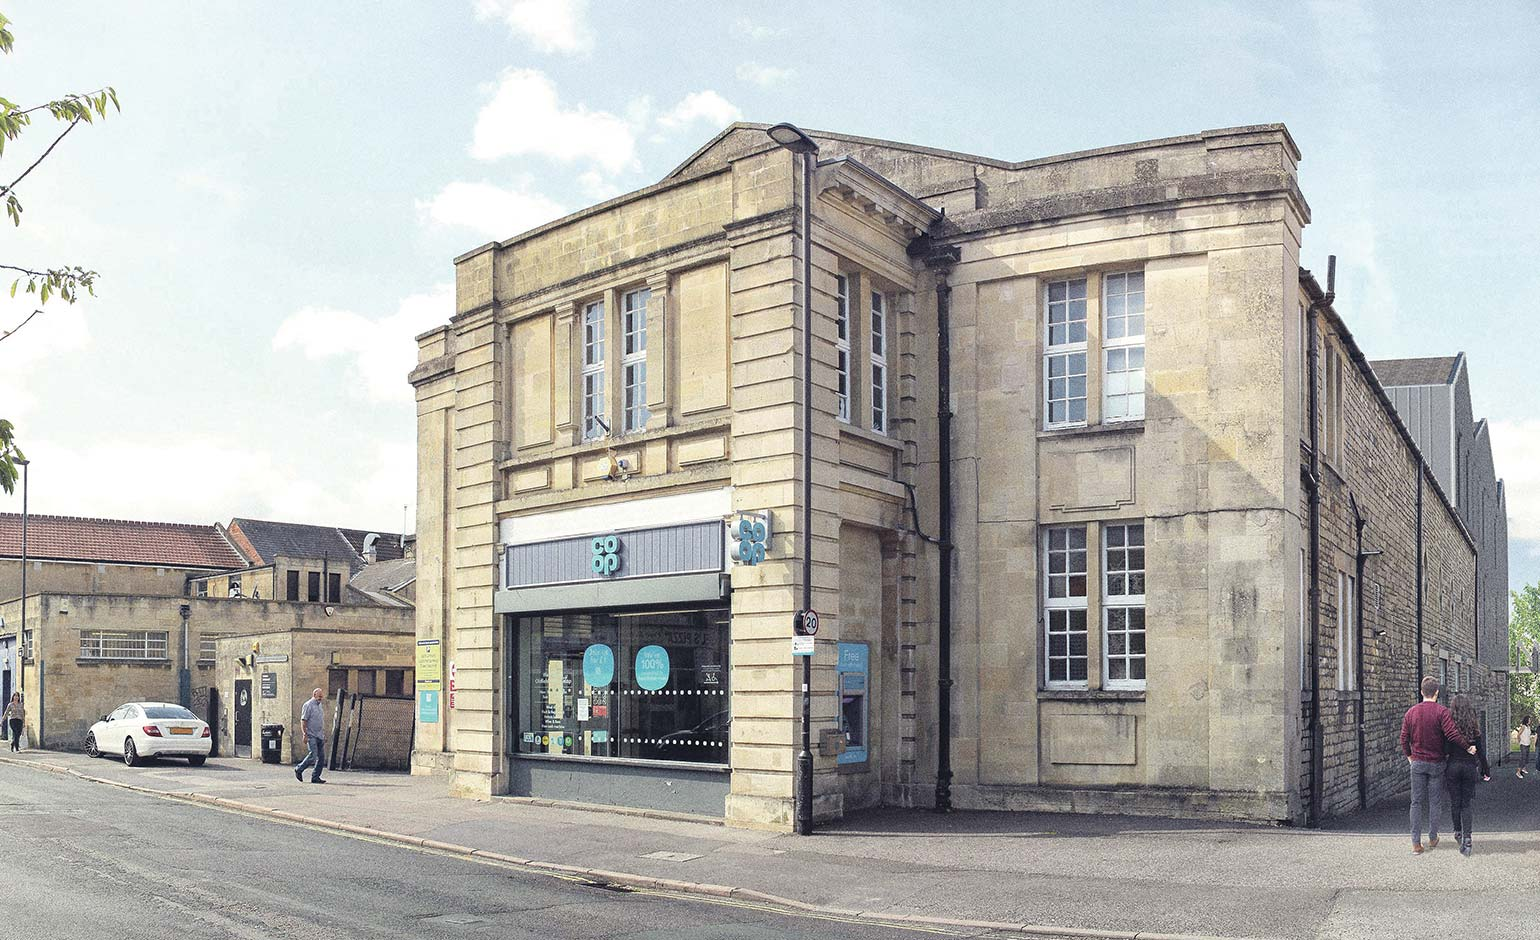 Plans to downsize Bath supermarket and build 92 student flats rejected